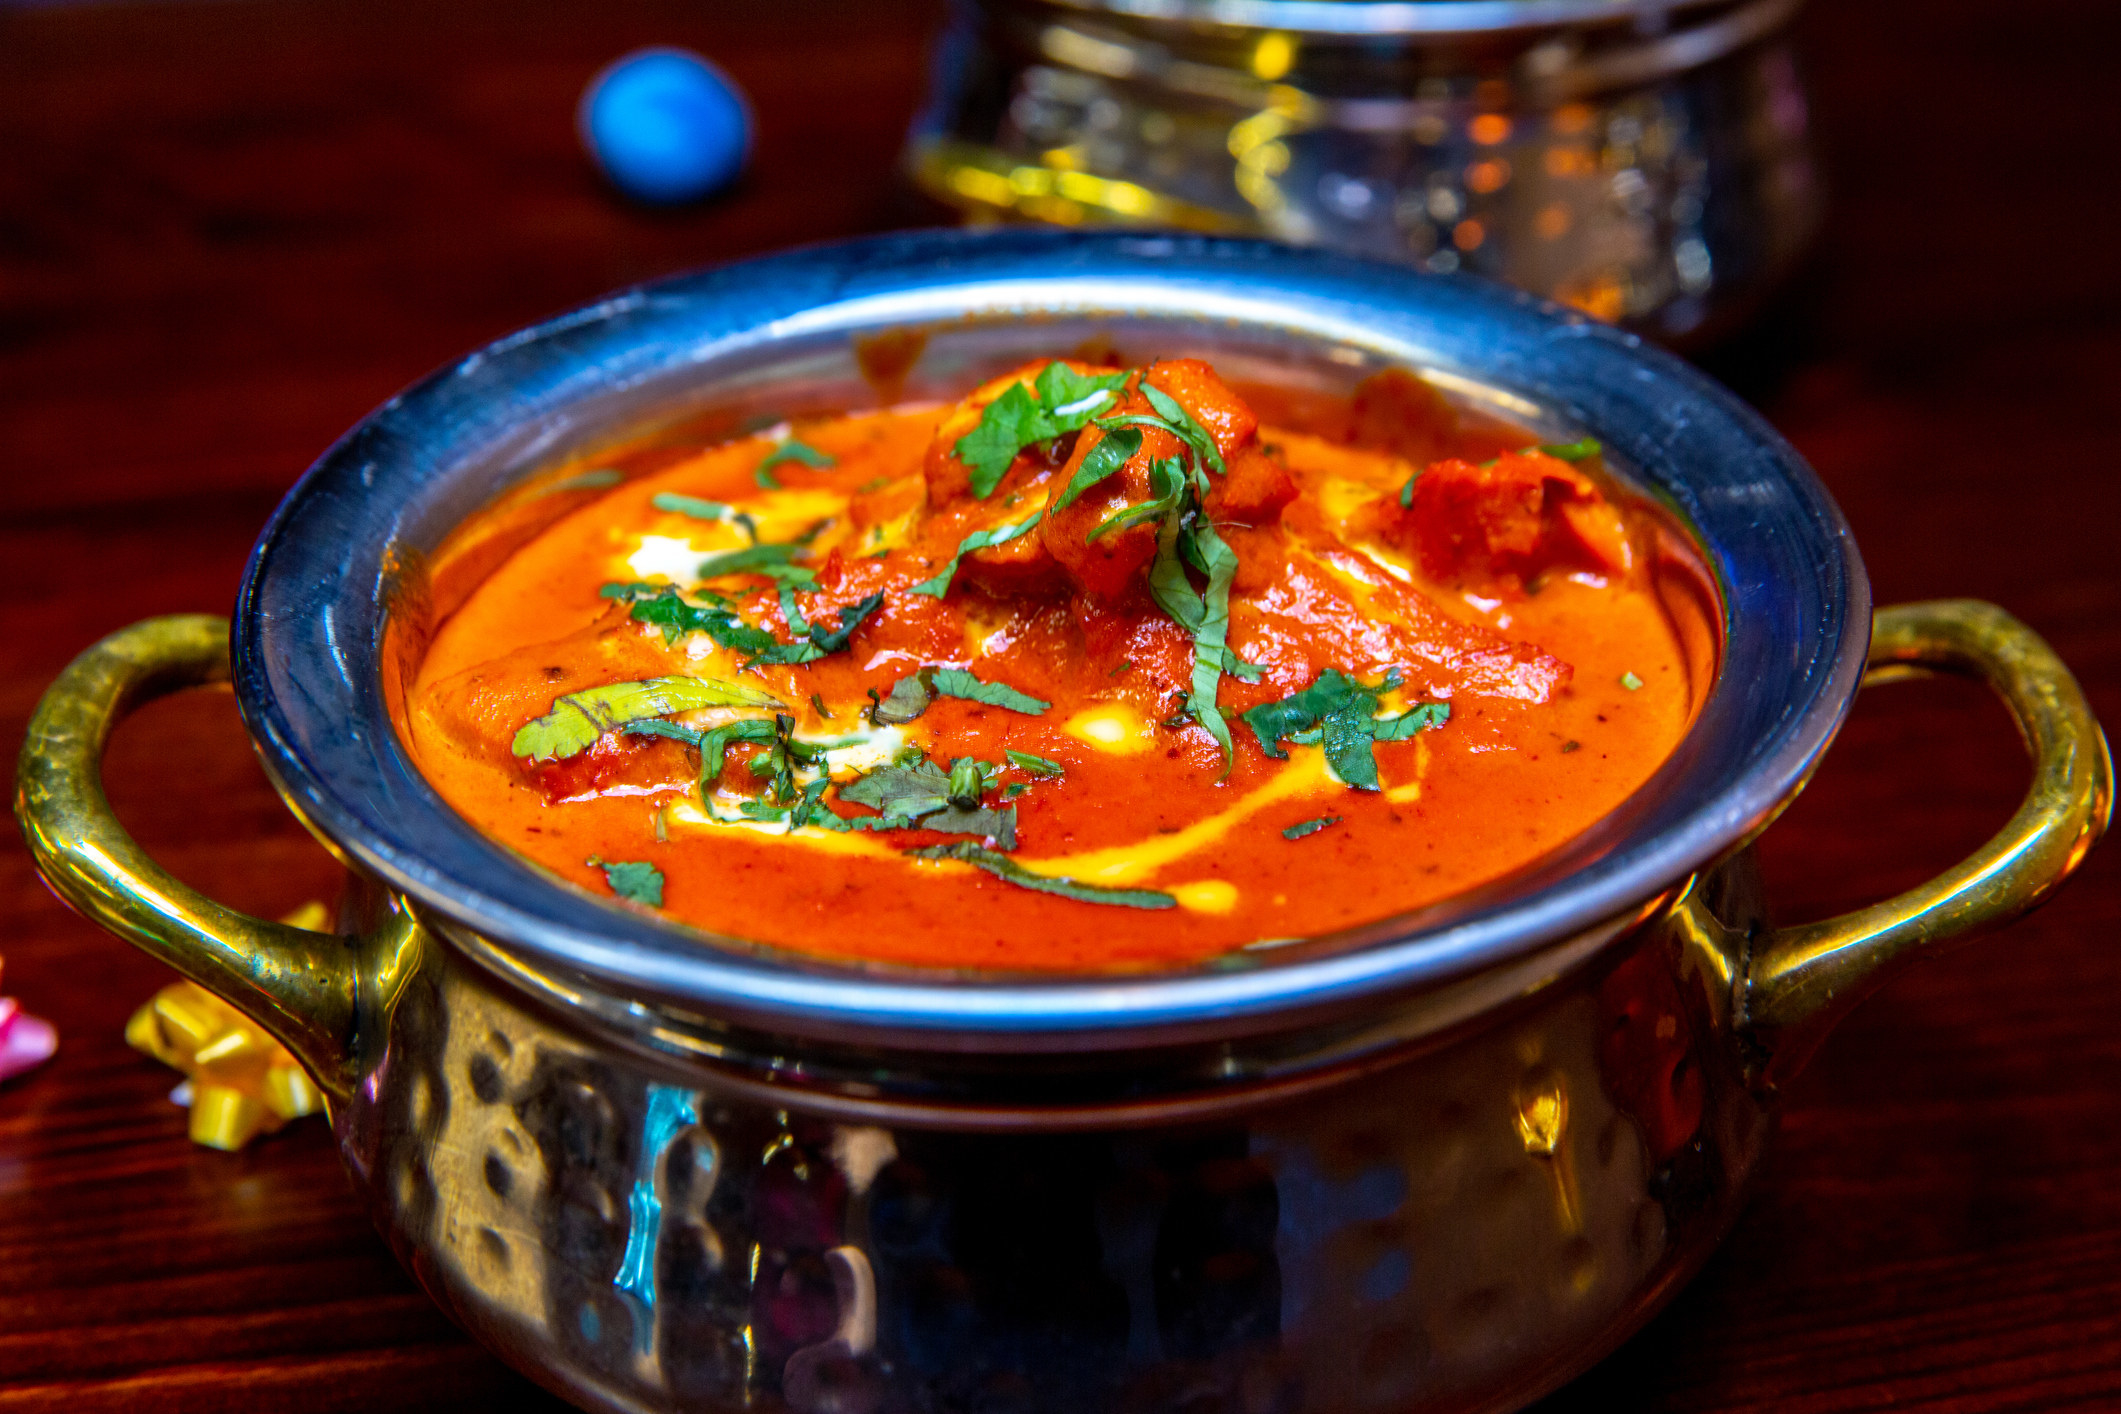 A bowl of creamy butter chicken garnished with cream, butter, and coriander